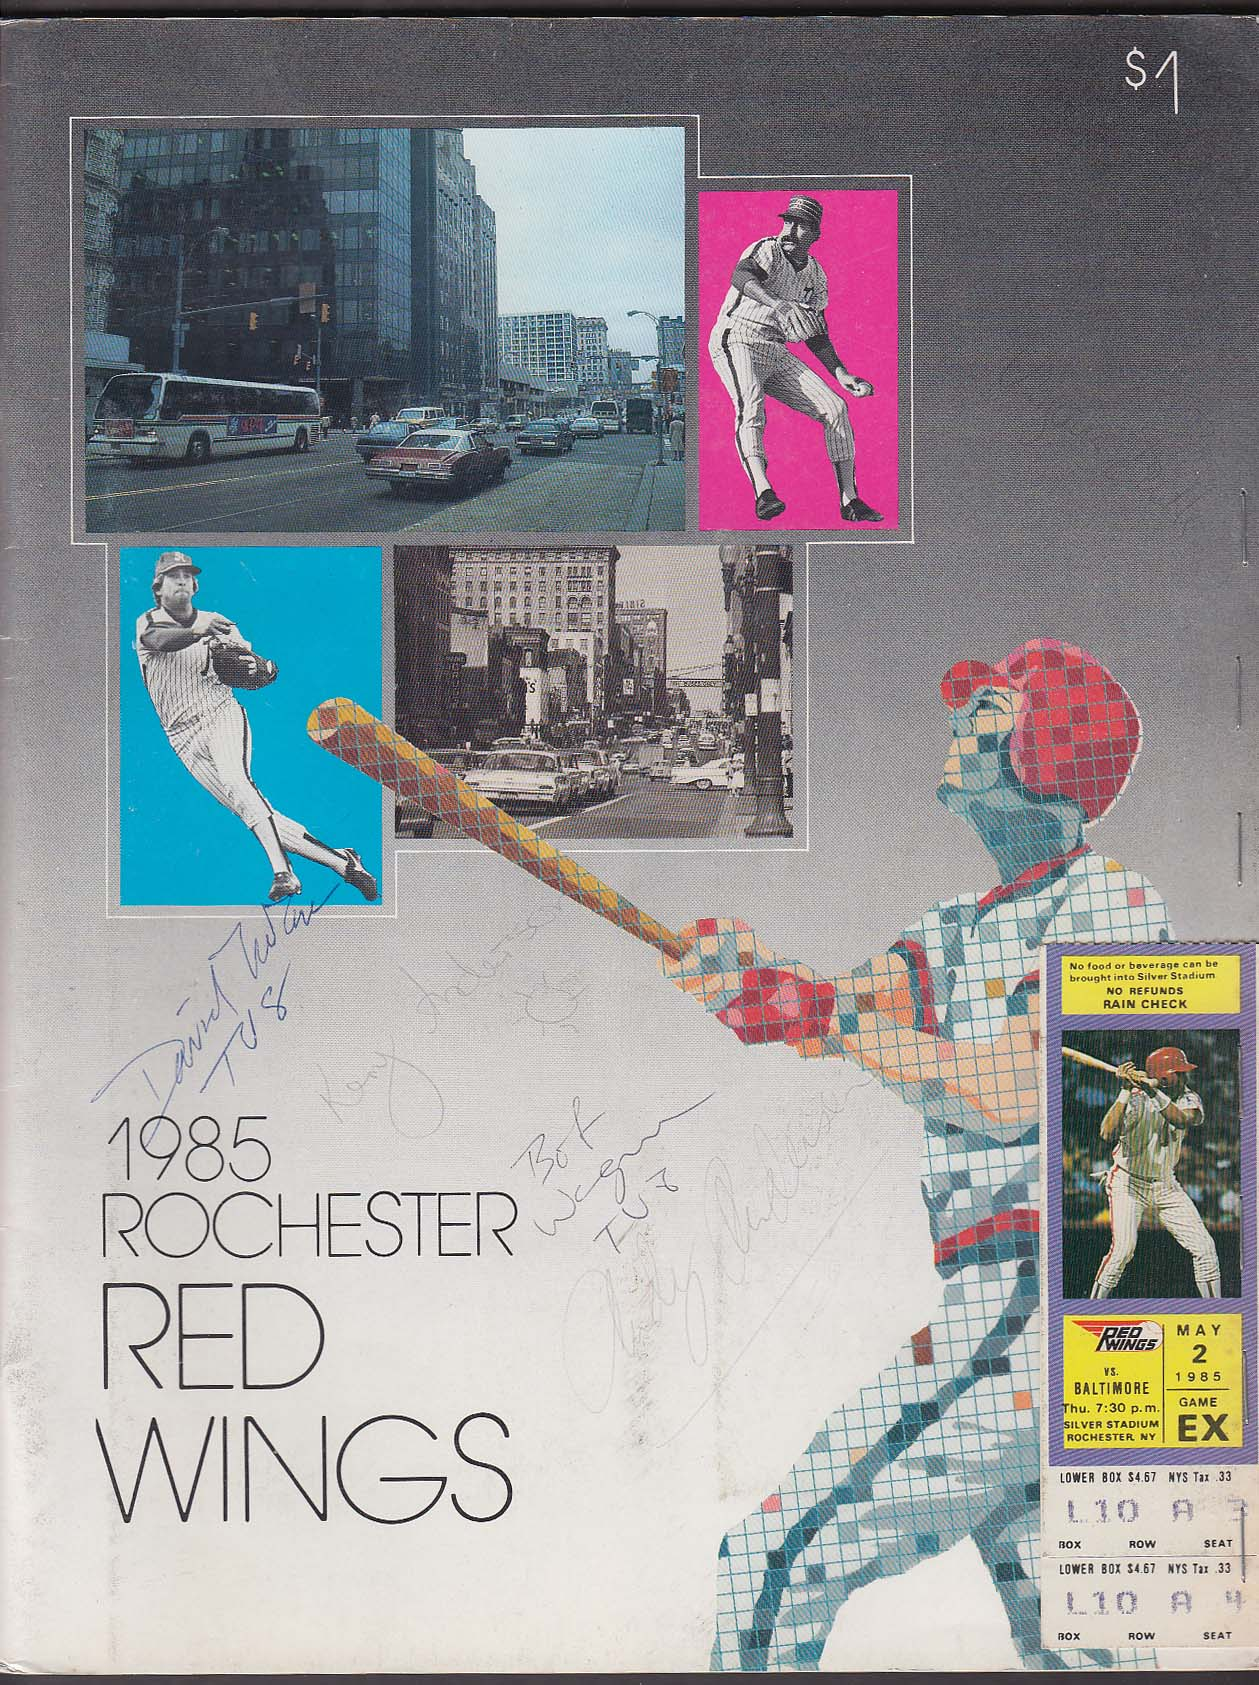 1985 Rochester Red Wings Program Scorebook w/ 2 stubs